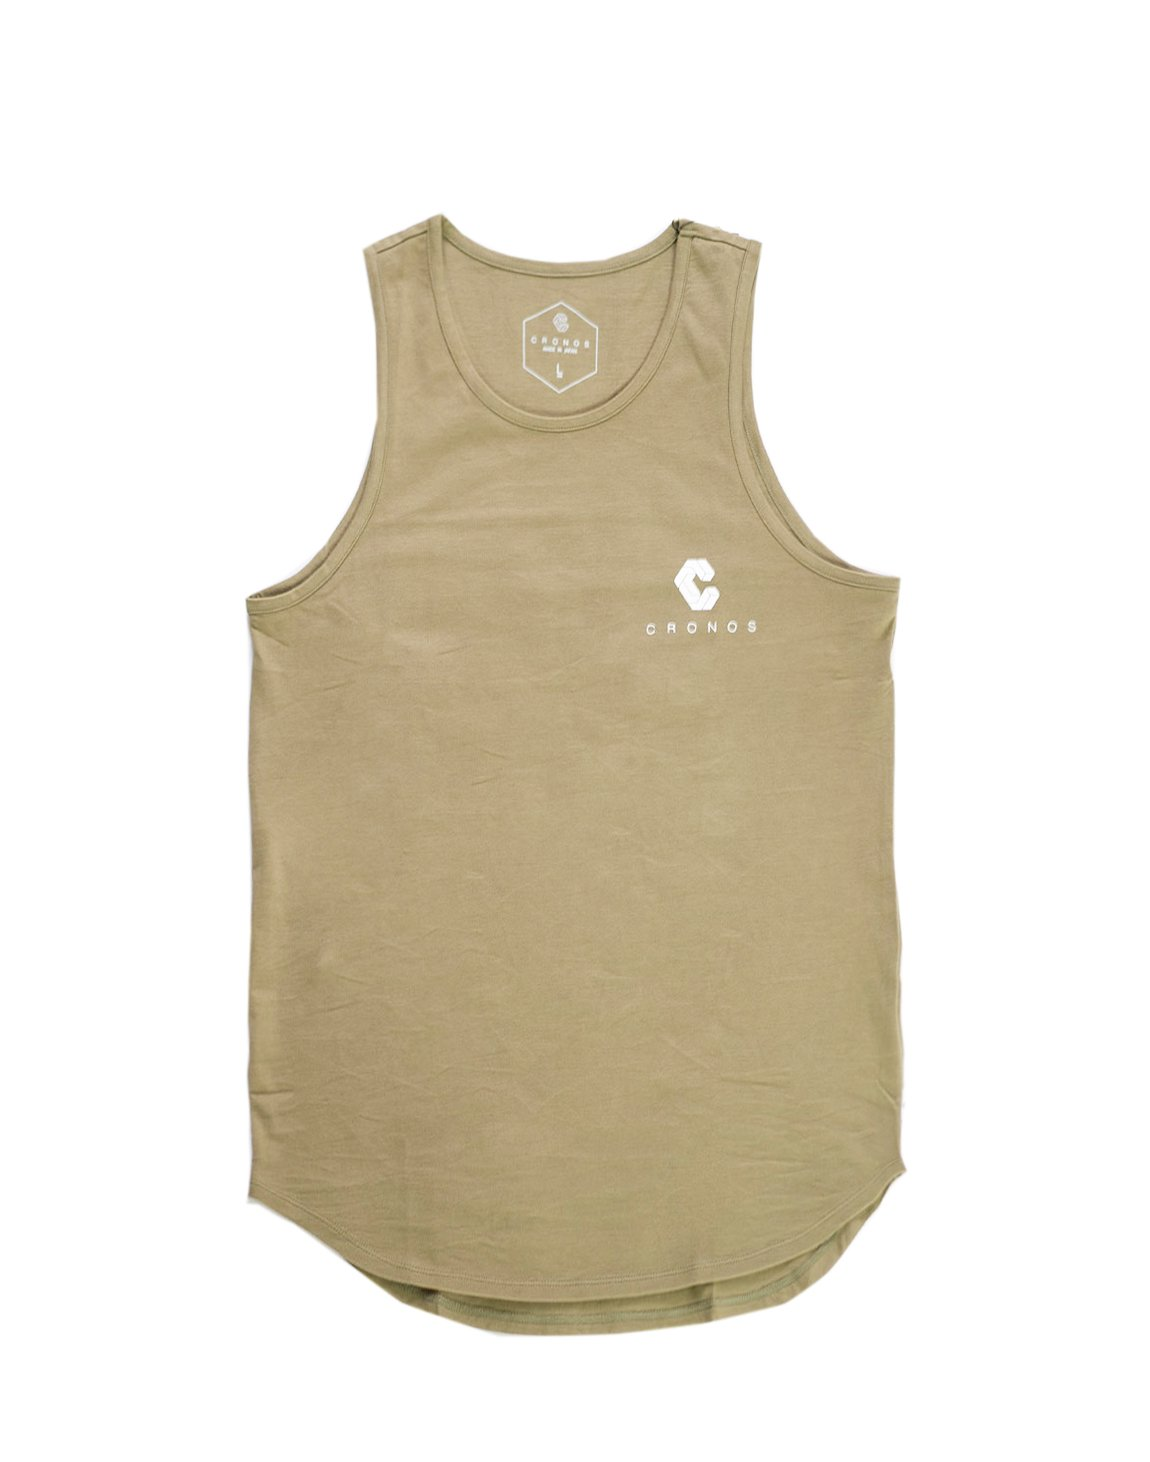 <img class='new_mark_img1' src='https://img.shop-pro.jp/img/new/icons1.gif' style='border:none;display:inline;margin:0px;padding:0px;width:auto;' />CRNS BACK BIG LOGO TANK TOP 【GREEN】